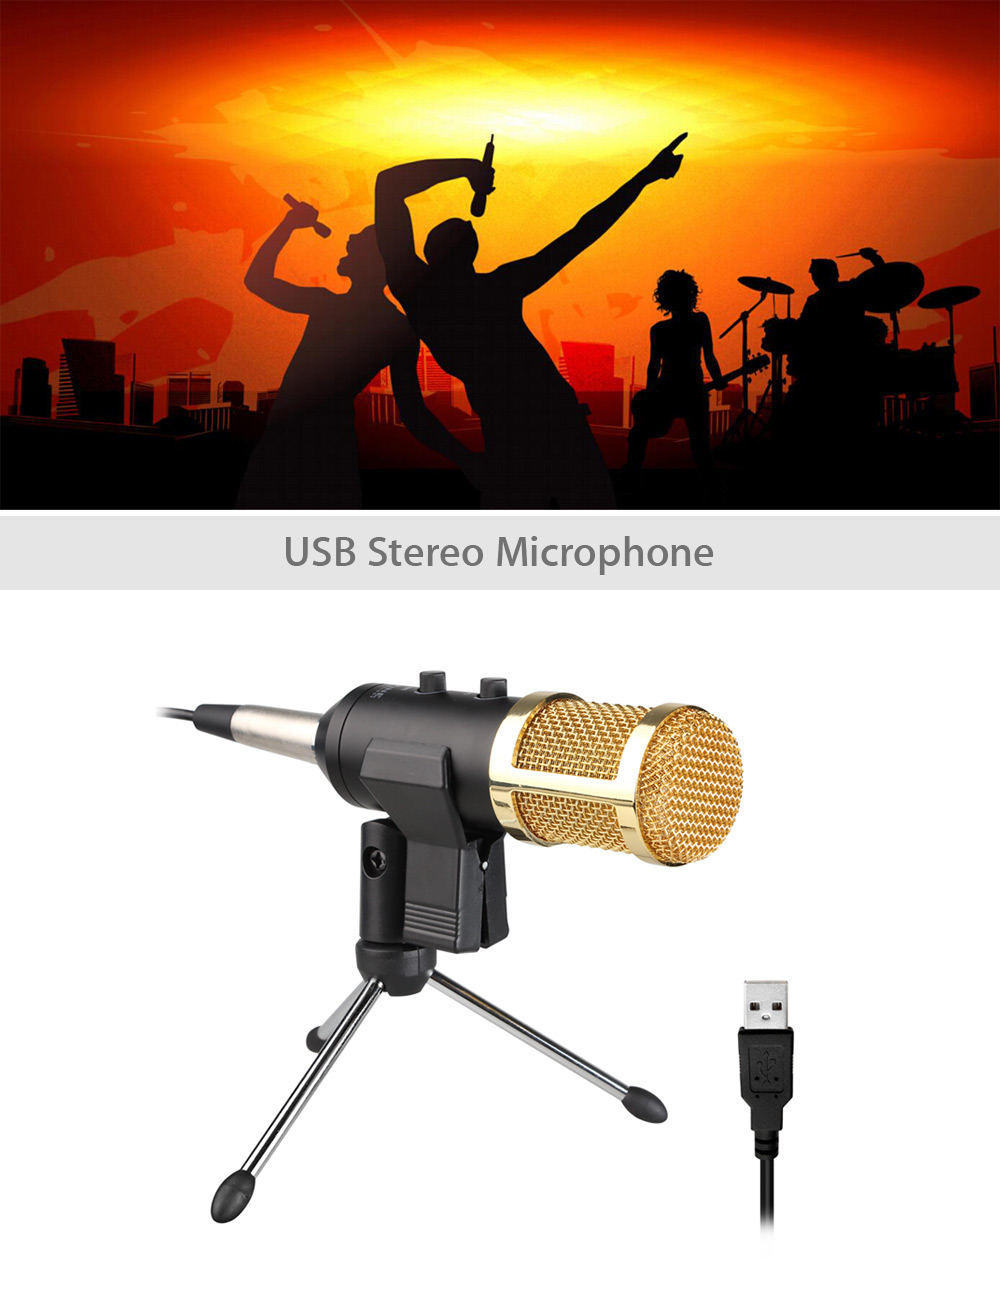 FIFINE K056 USB Stereo Microphone for Laptop / Desktop with USB Port